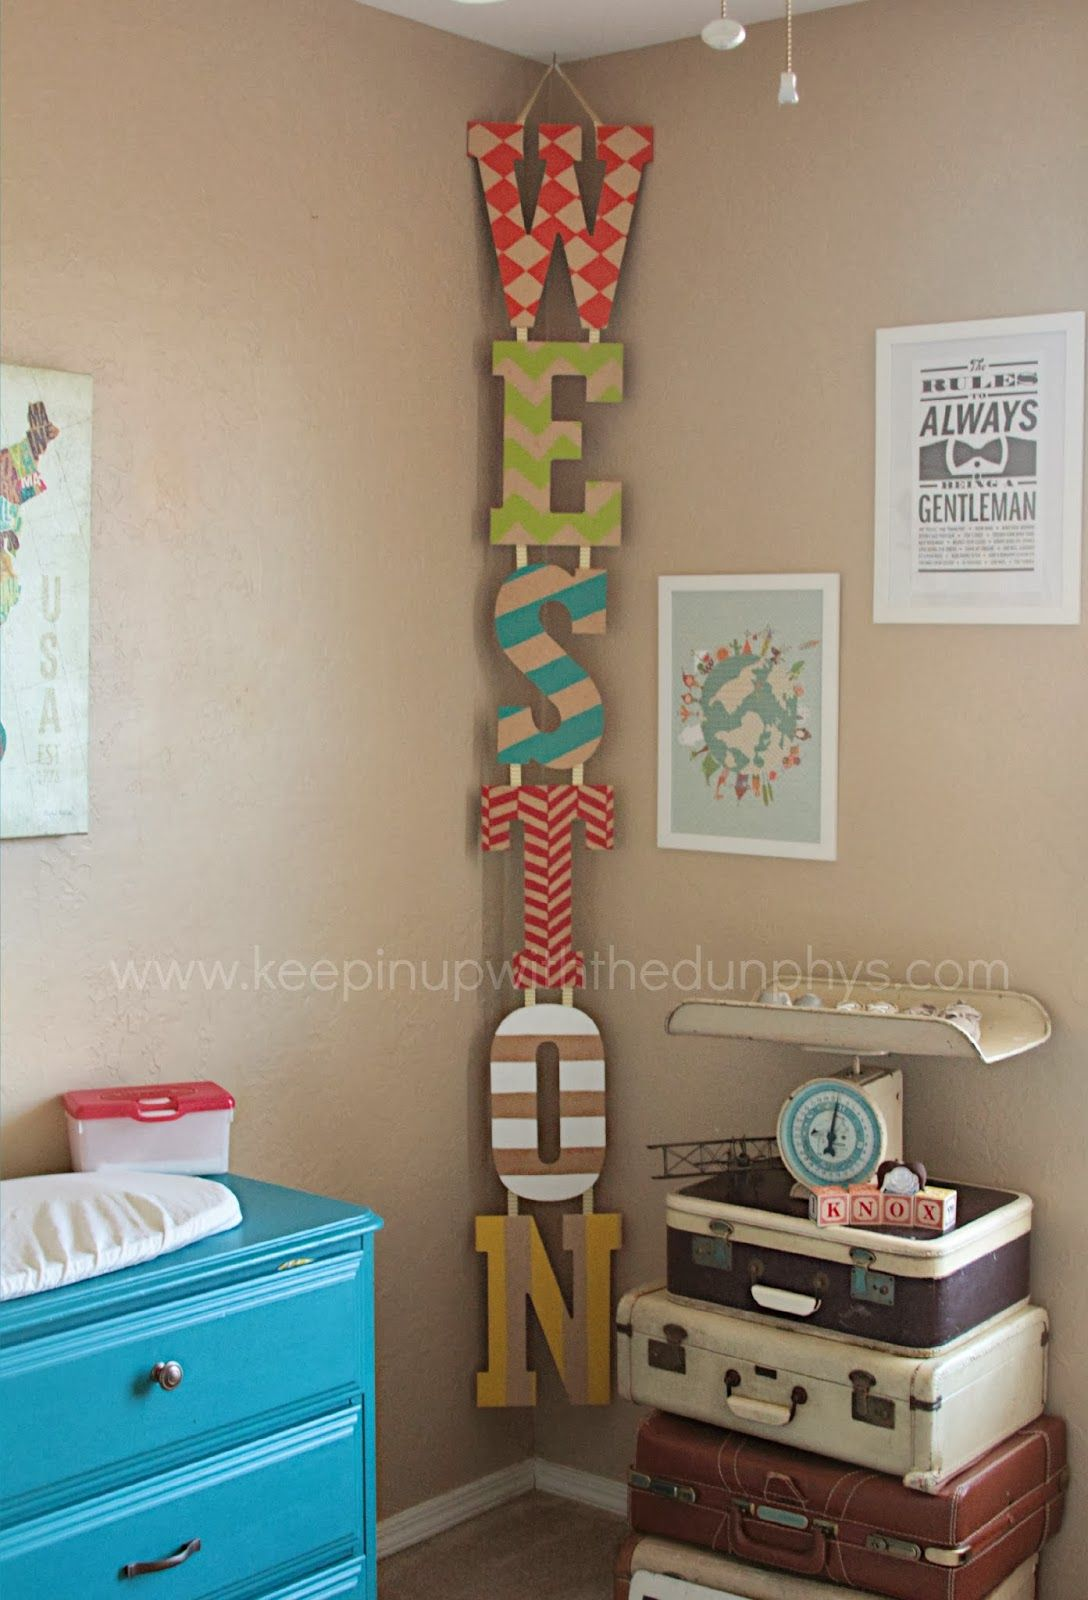 Great Hanging Vertical Kidu0027s Name In The Corner   Just Decorate Letters, Attach  Together, And Hang.